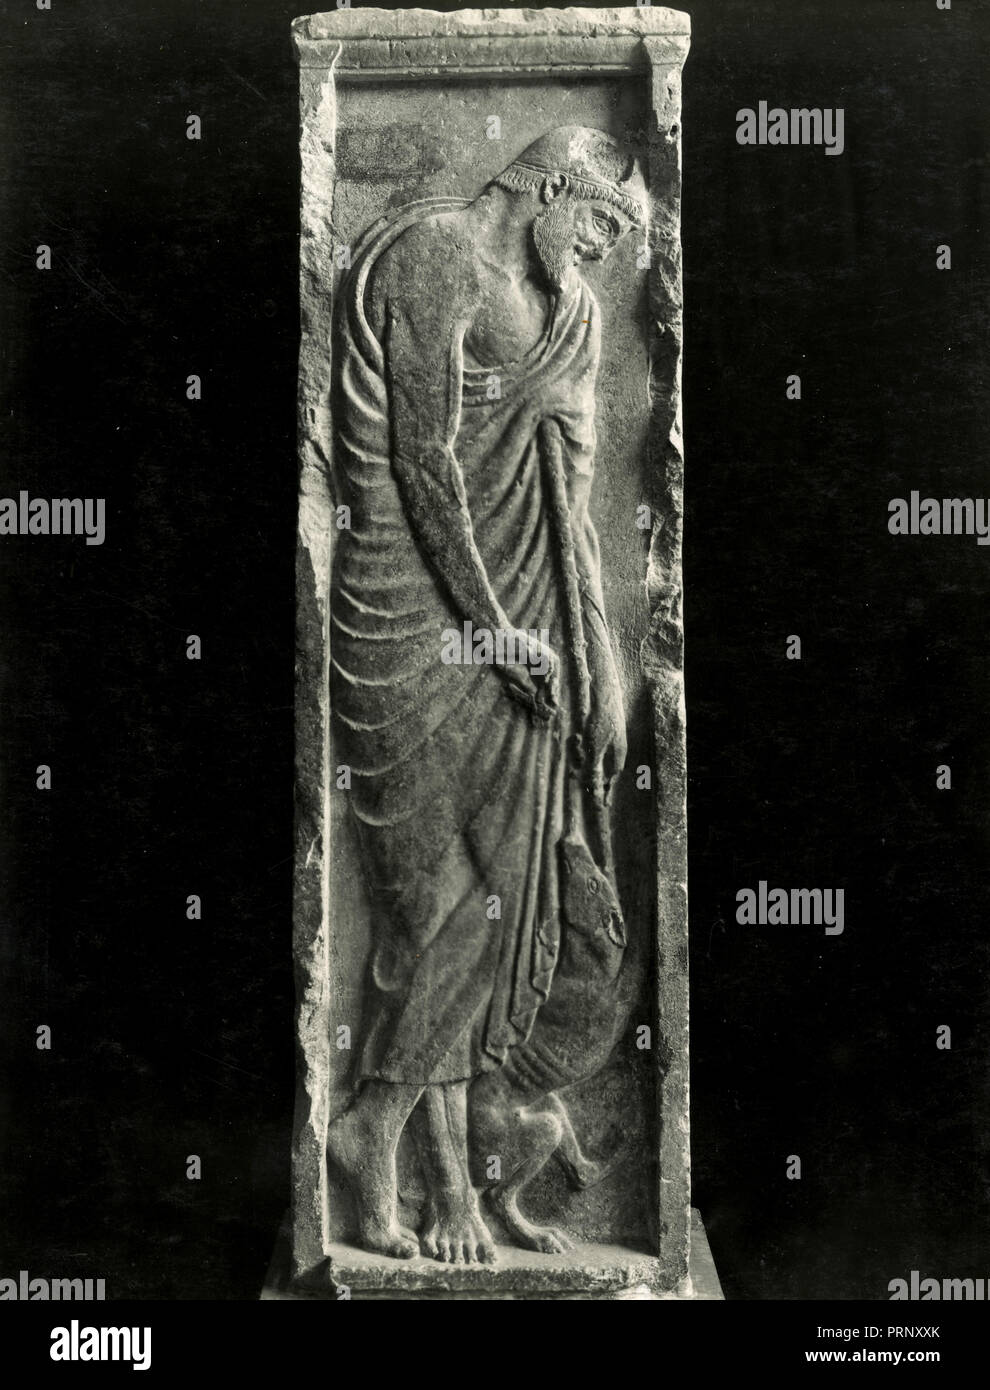 Funerary stele of Alxenor or Stele of Orchomenos, Greece 1930s - Stock Image